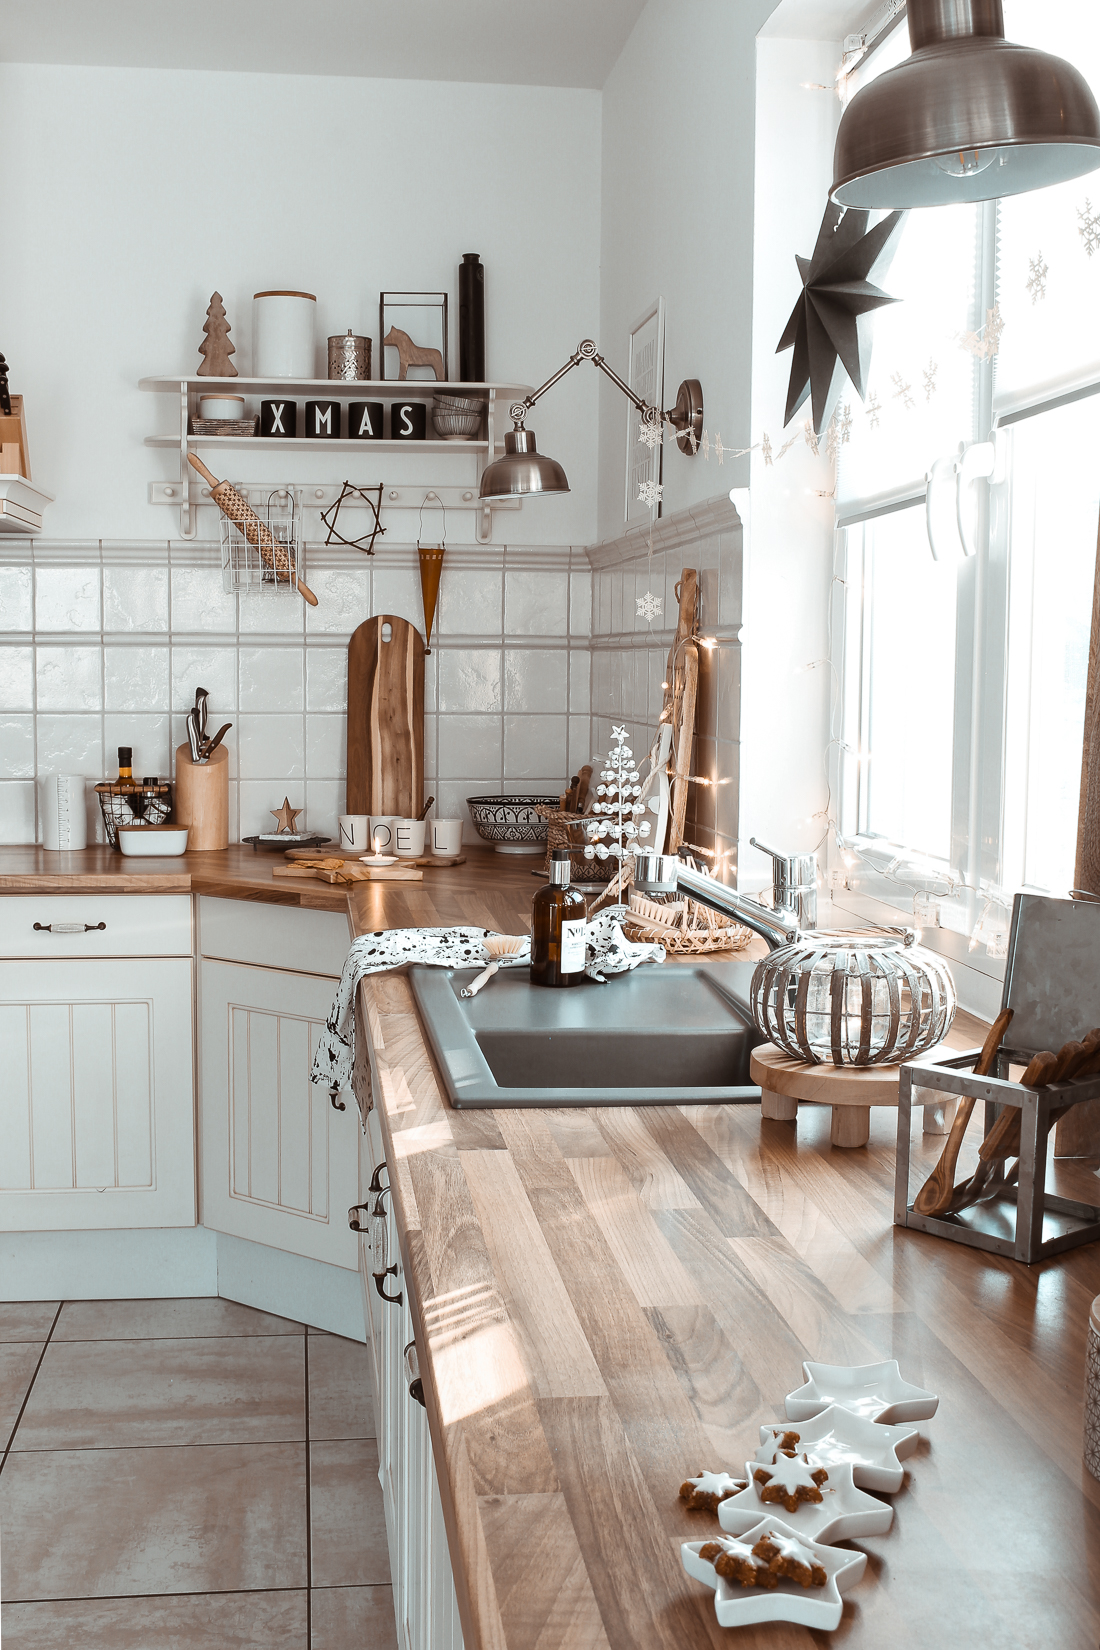 Visit This Warm, Natural Boho German Home For The Holidays